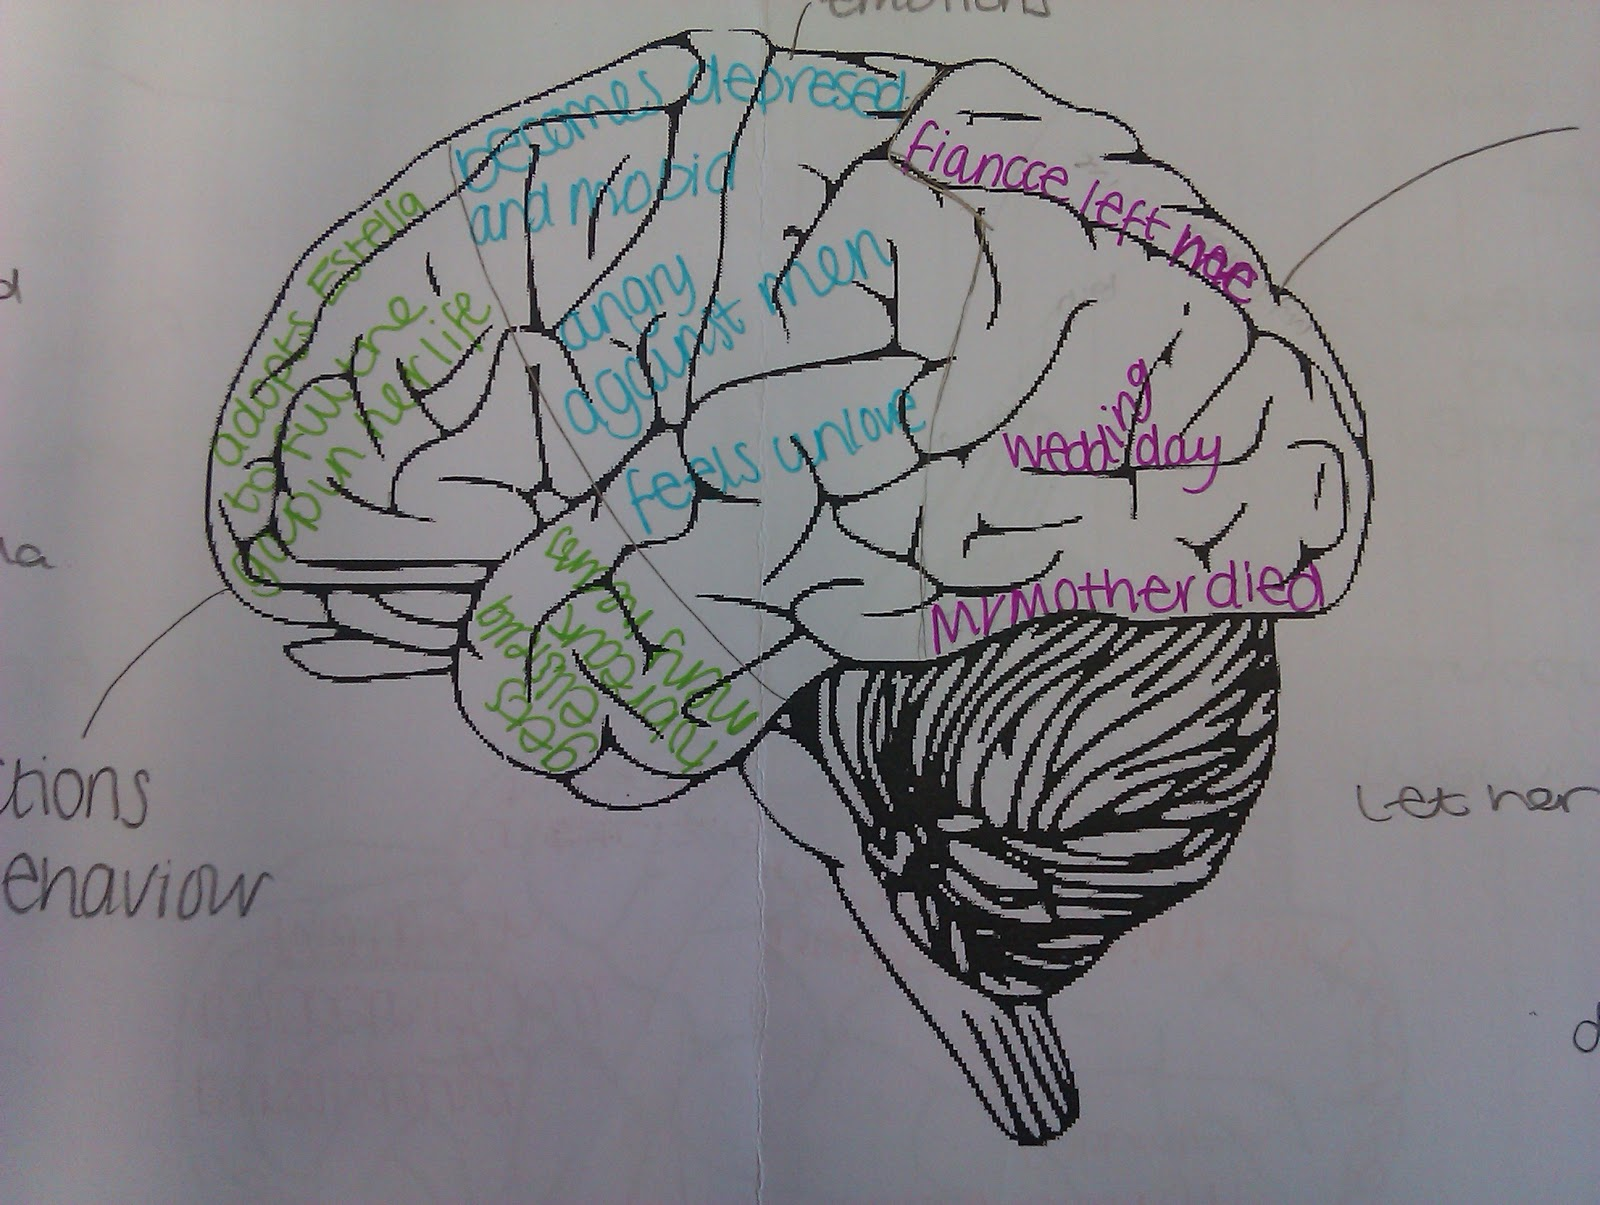 a psychological journey comparing miss havisham and lady macbeth student s work annotating brain